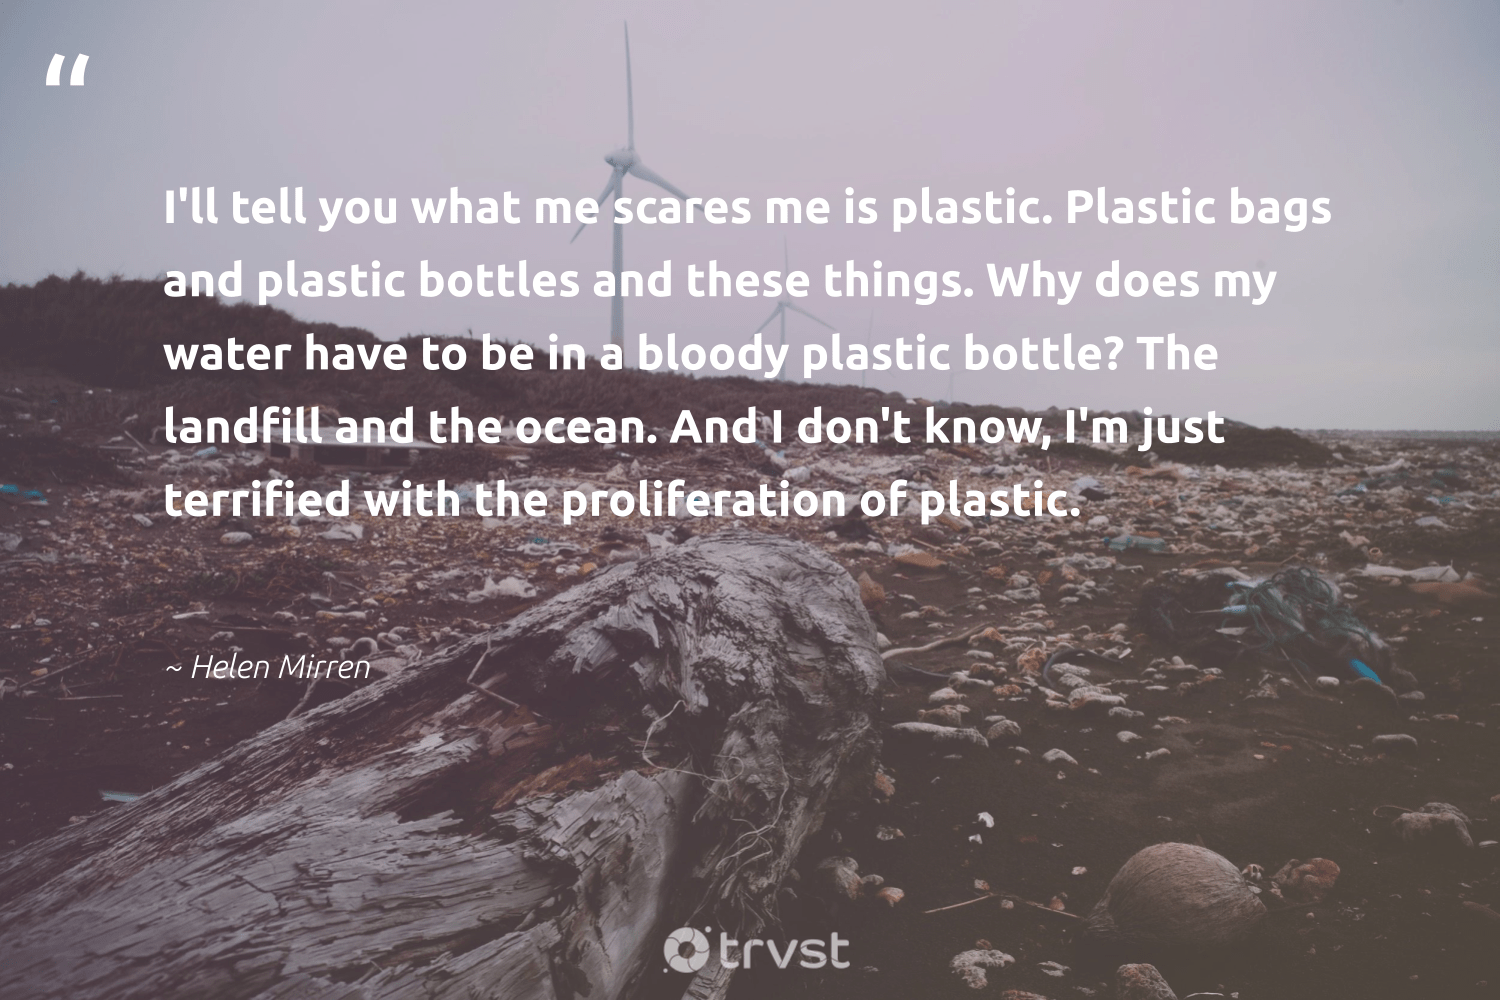 """""""I'll tell you what me scares me is plastic. Plastic bags and plastic bottles and these things. Why does my water have to be in a bloody plastic bottle? The landfill and the ocean. And I don't know, I'm just terrified with the proliferation of plastic.""""  - Helen Mirren #trvst #quotes #landfill #plastic #water #ocean #river #breakfreefromplastic #ecoconscious #getoutside #thinkgreen #oceanpollution"""